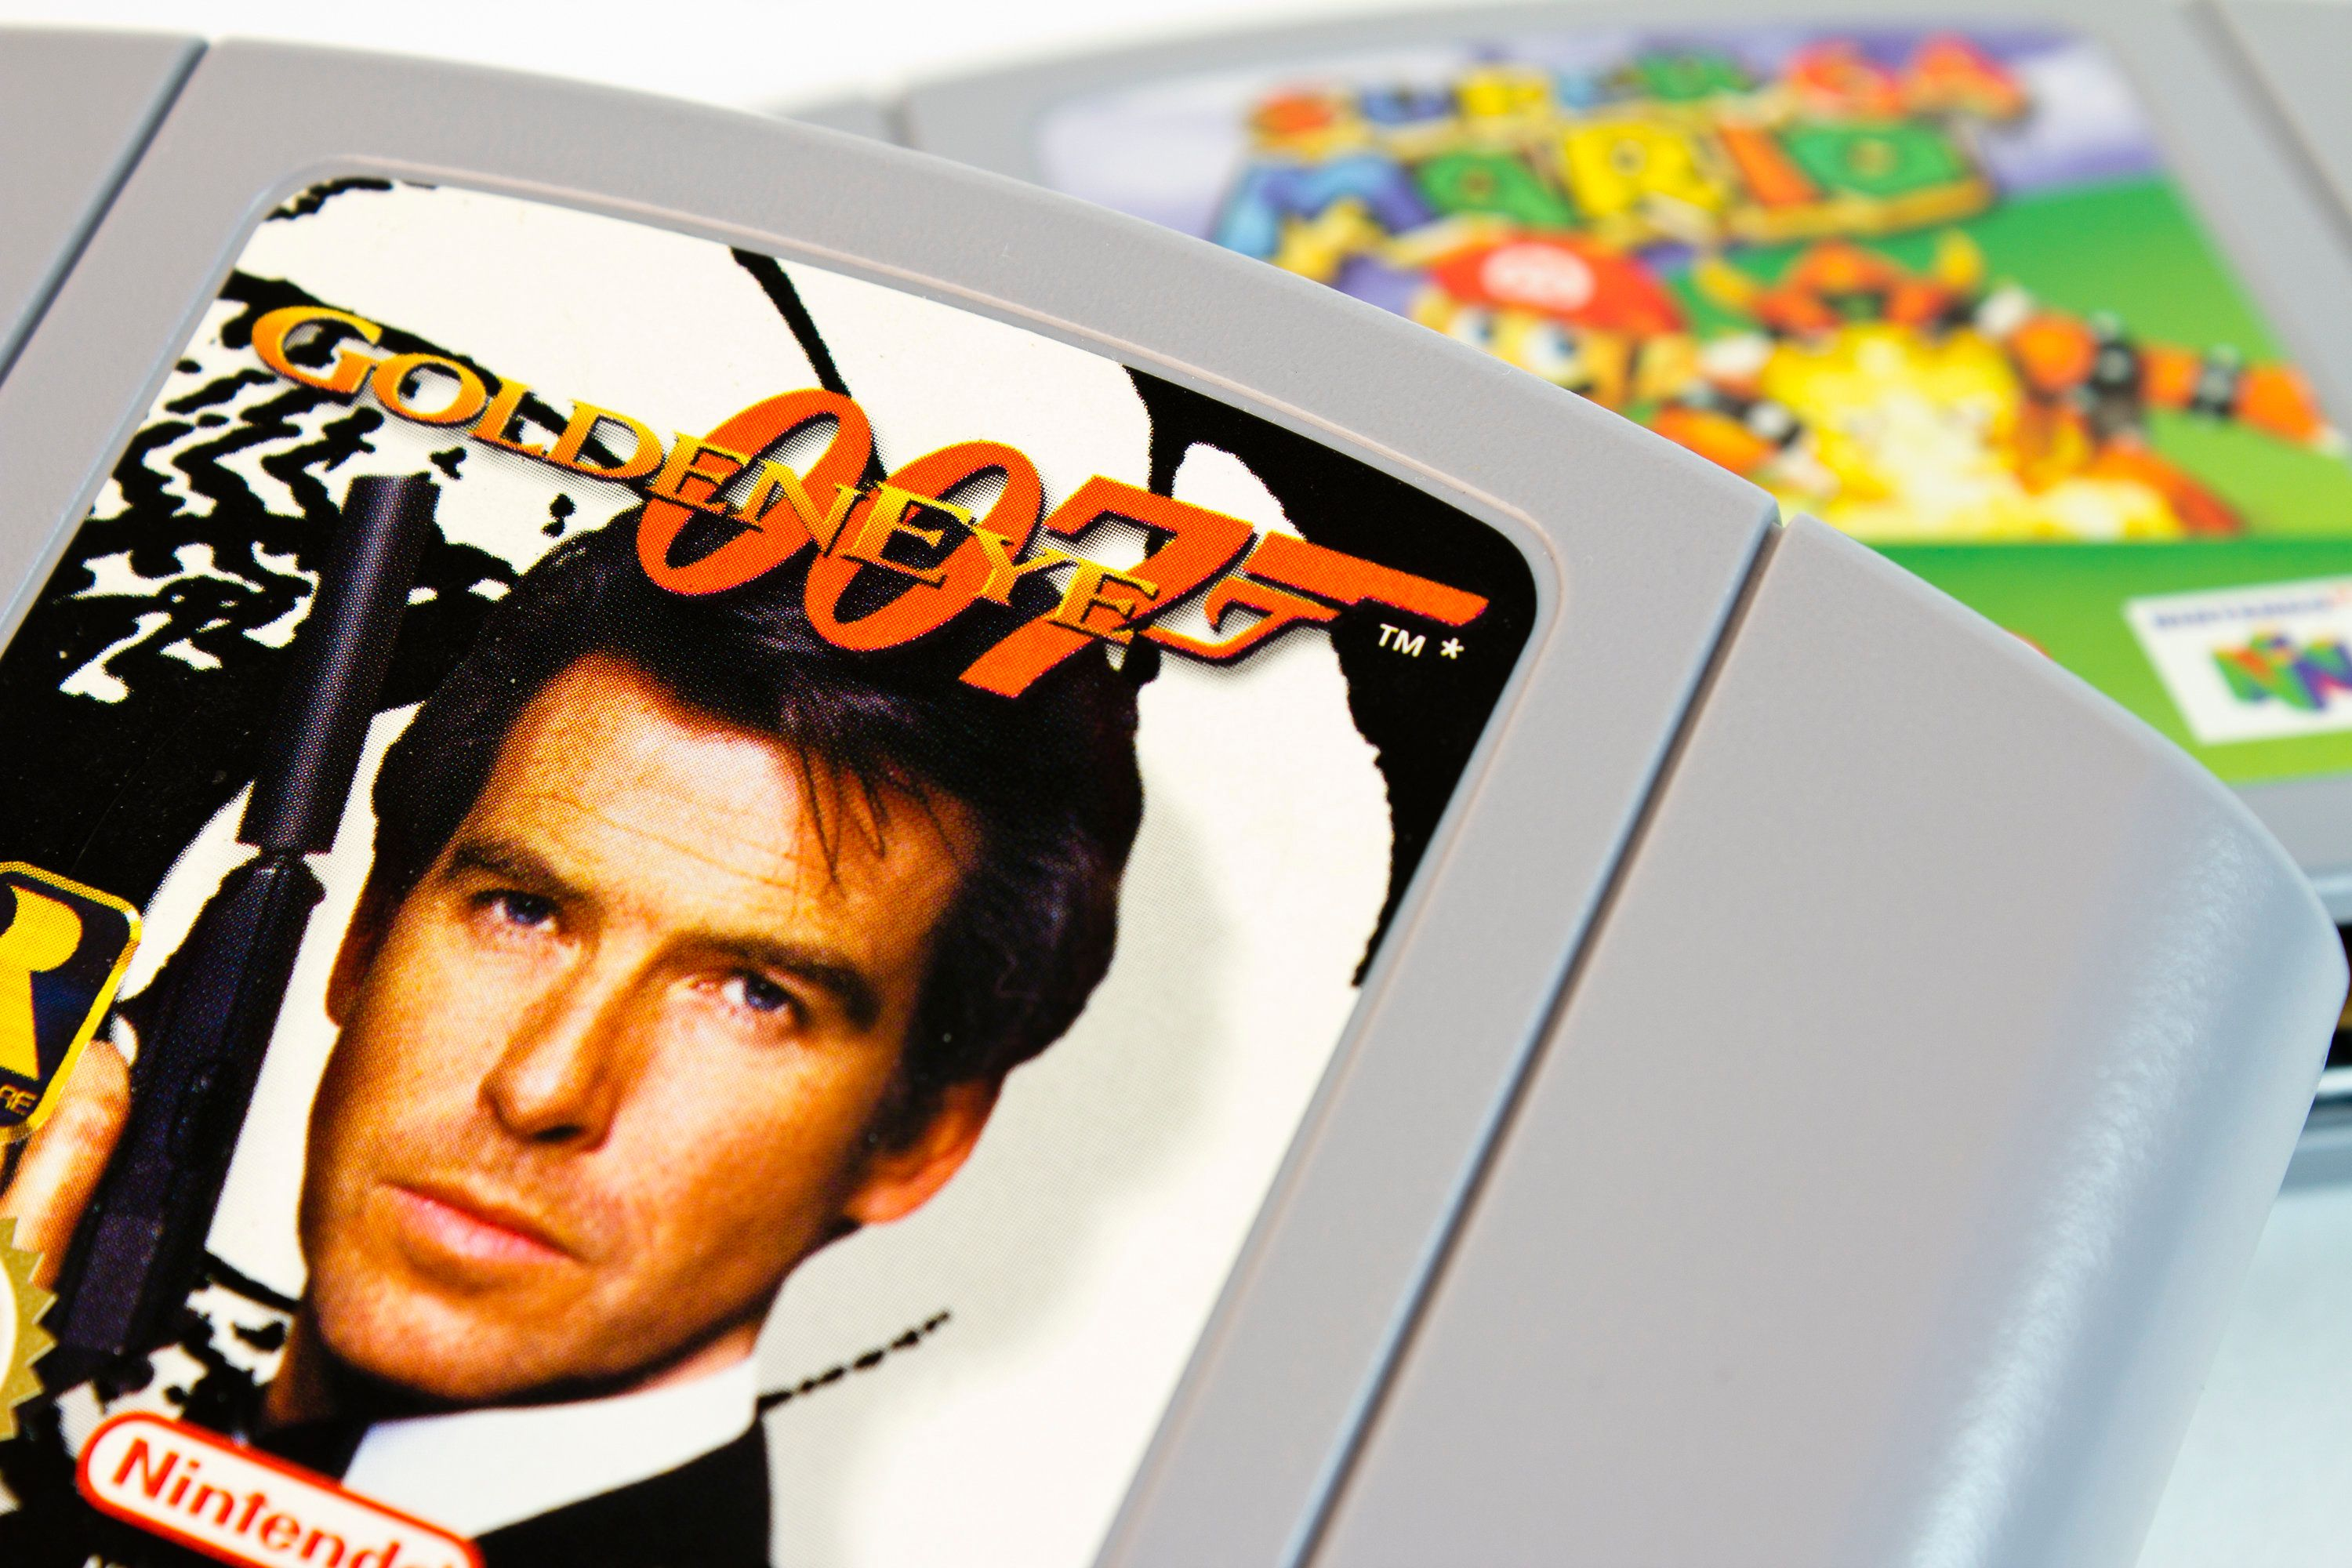 'Gothenburg, Sweden - April 15, 2011: Studio shot of the very popular Nintendo 64 game 007 Goldeneye, with Super Mario 64 in the background.'